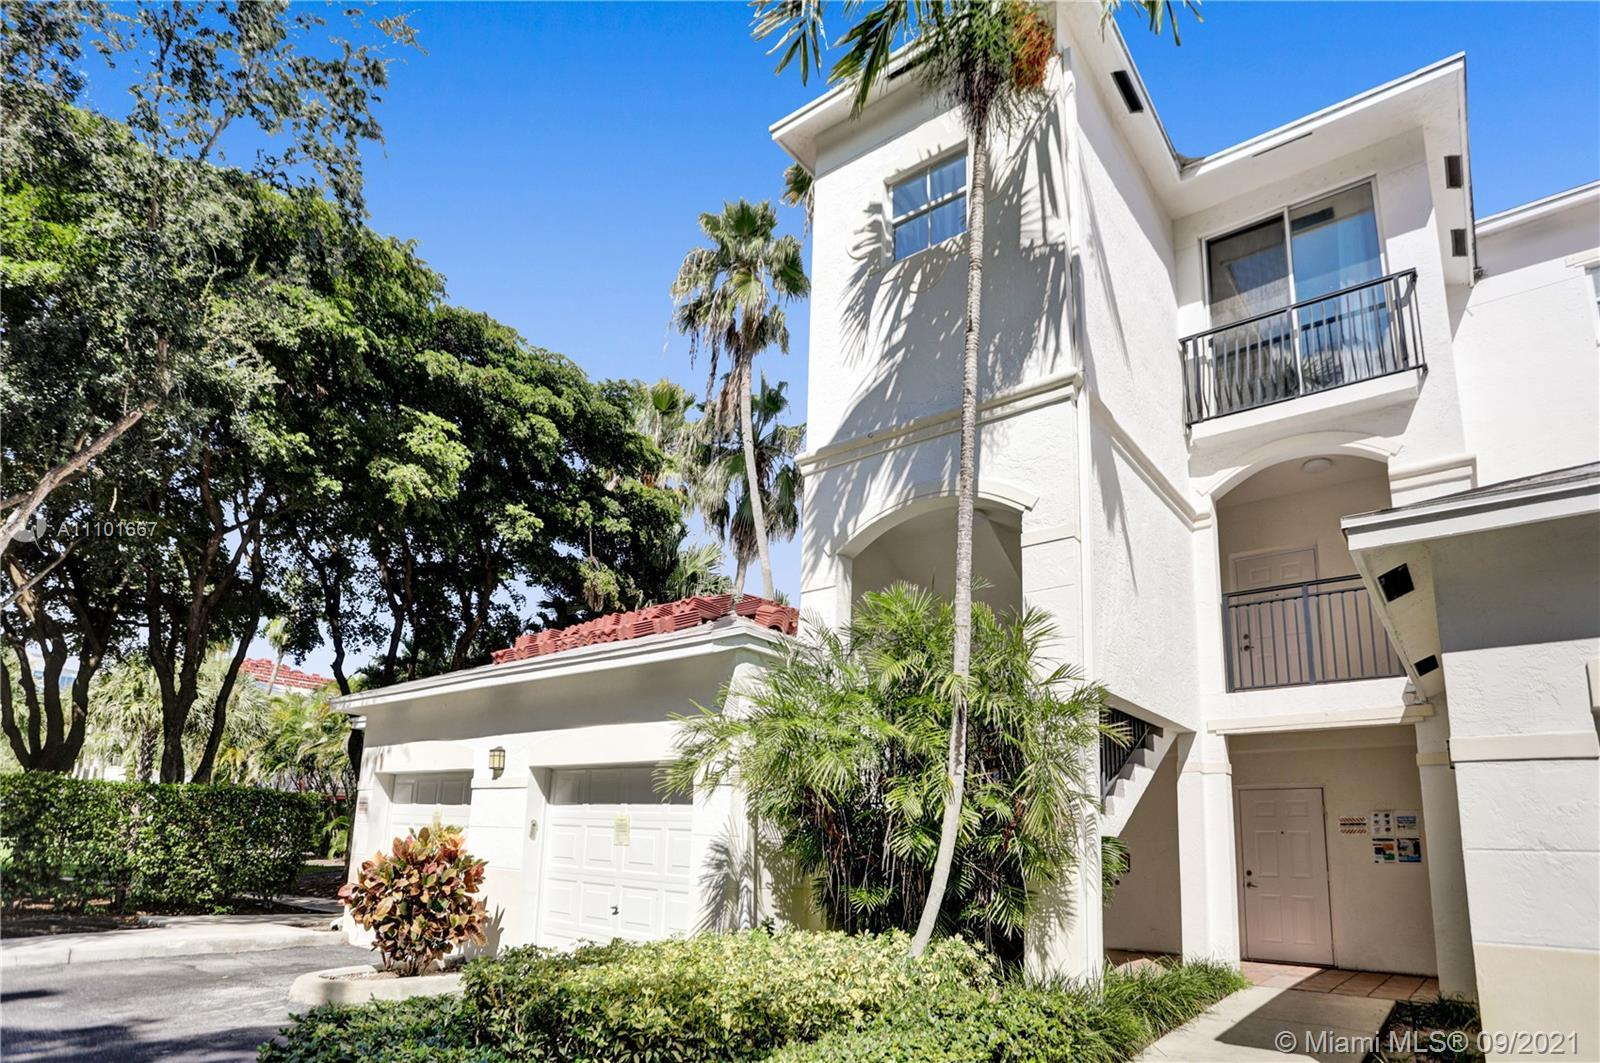 Very rare opportunity to own a condo with a single car garage in the desirable Village by the Bay! E